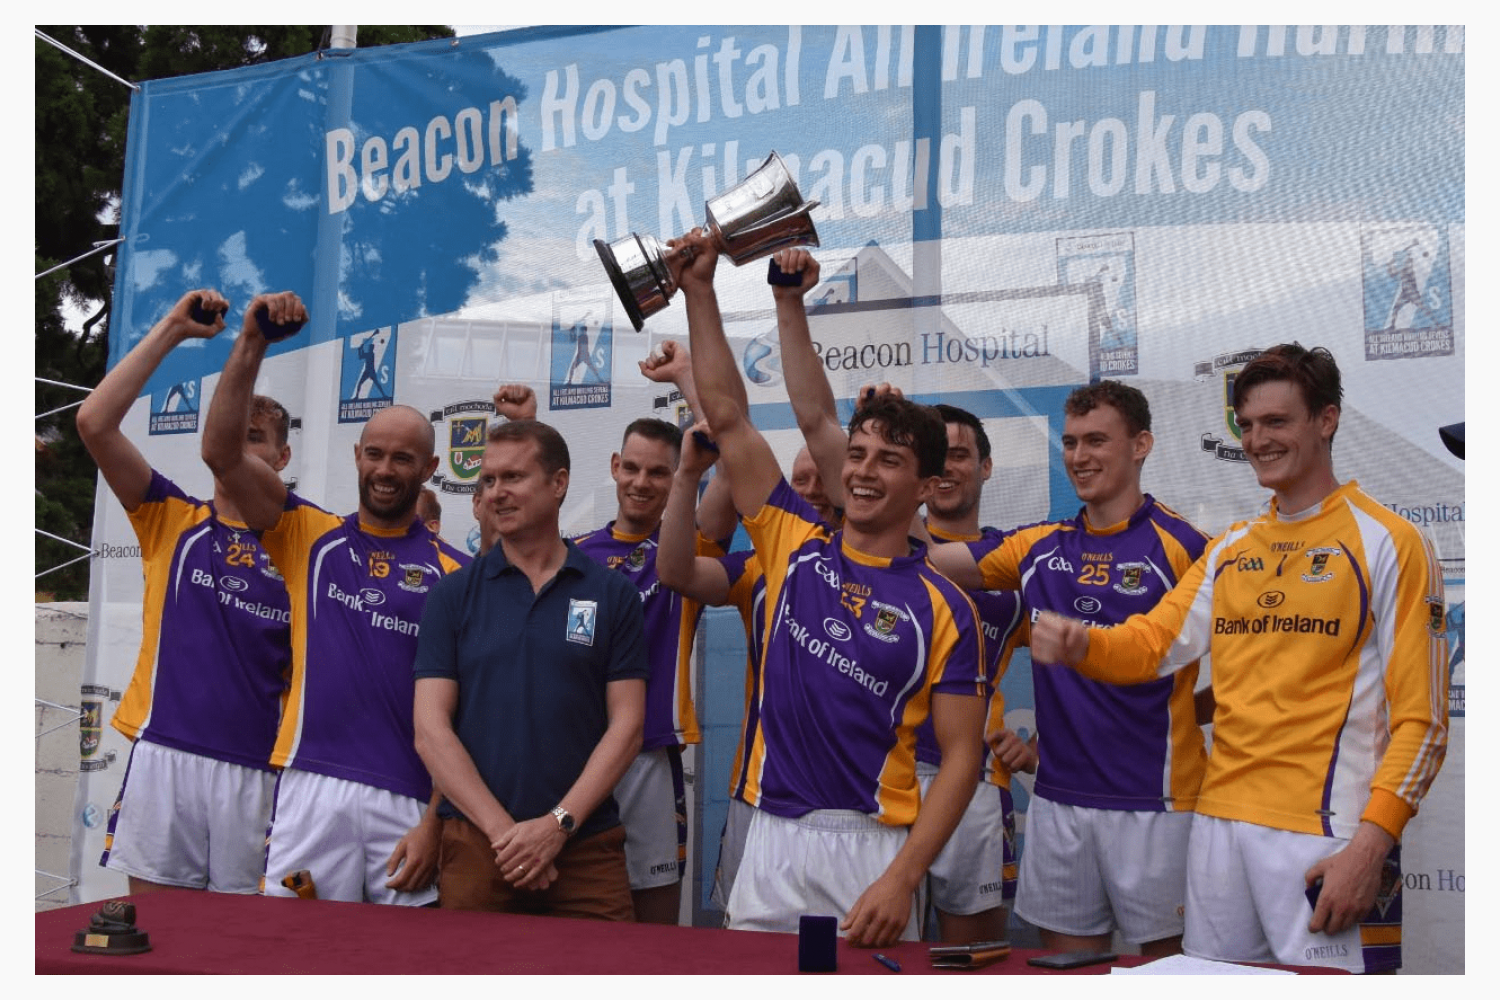 Crokes win Beacon Hospital All Ireland 7s